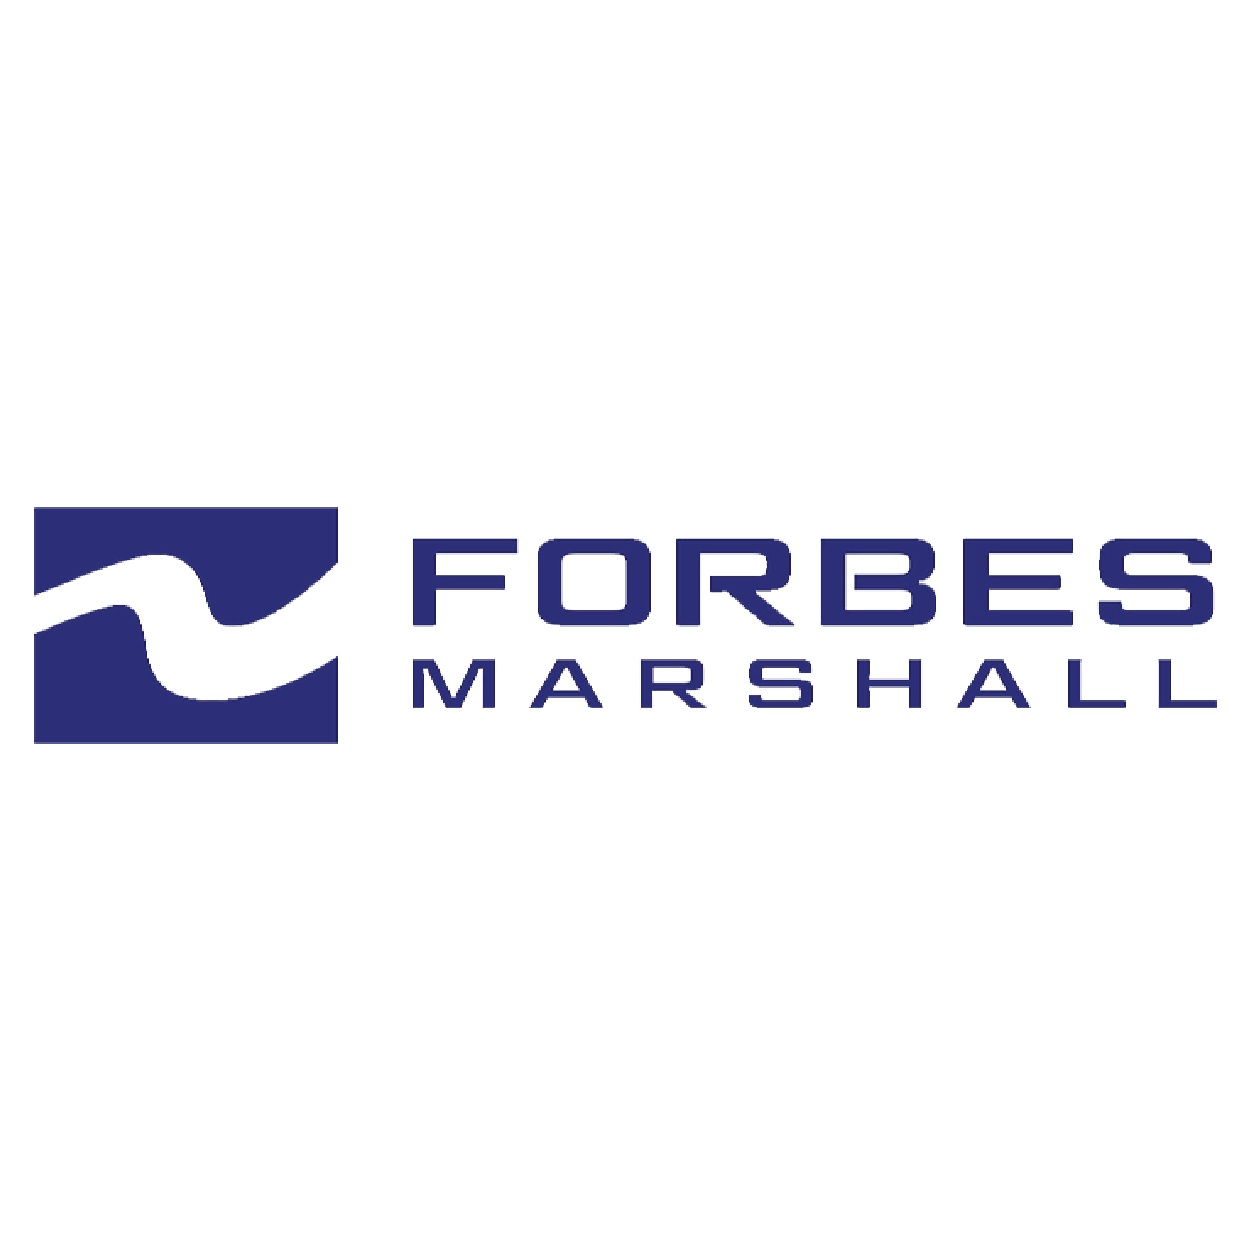 FORBES Marshall 300px-01